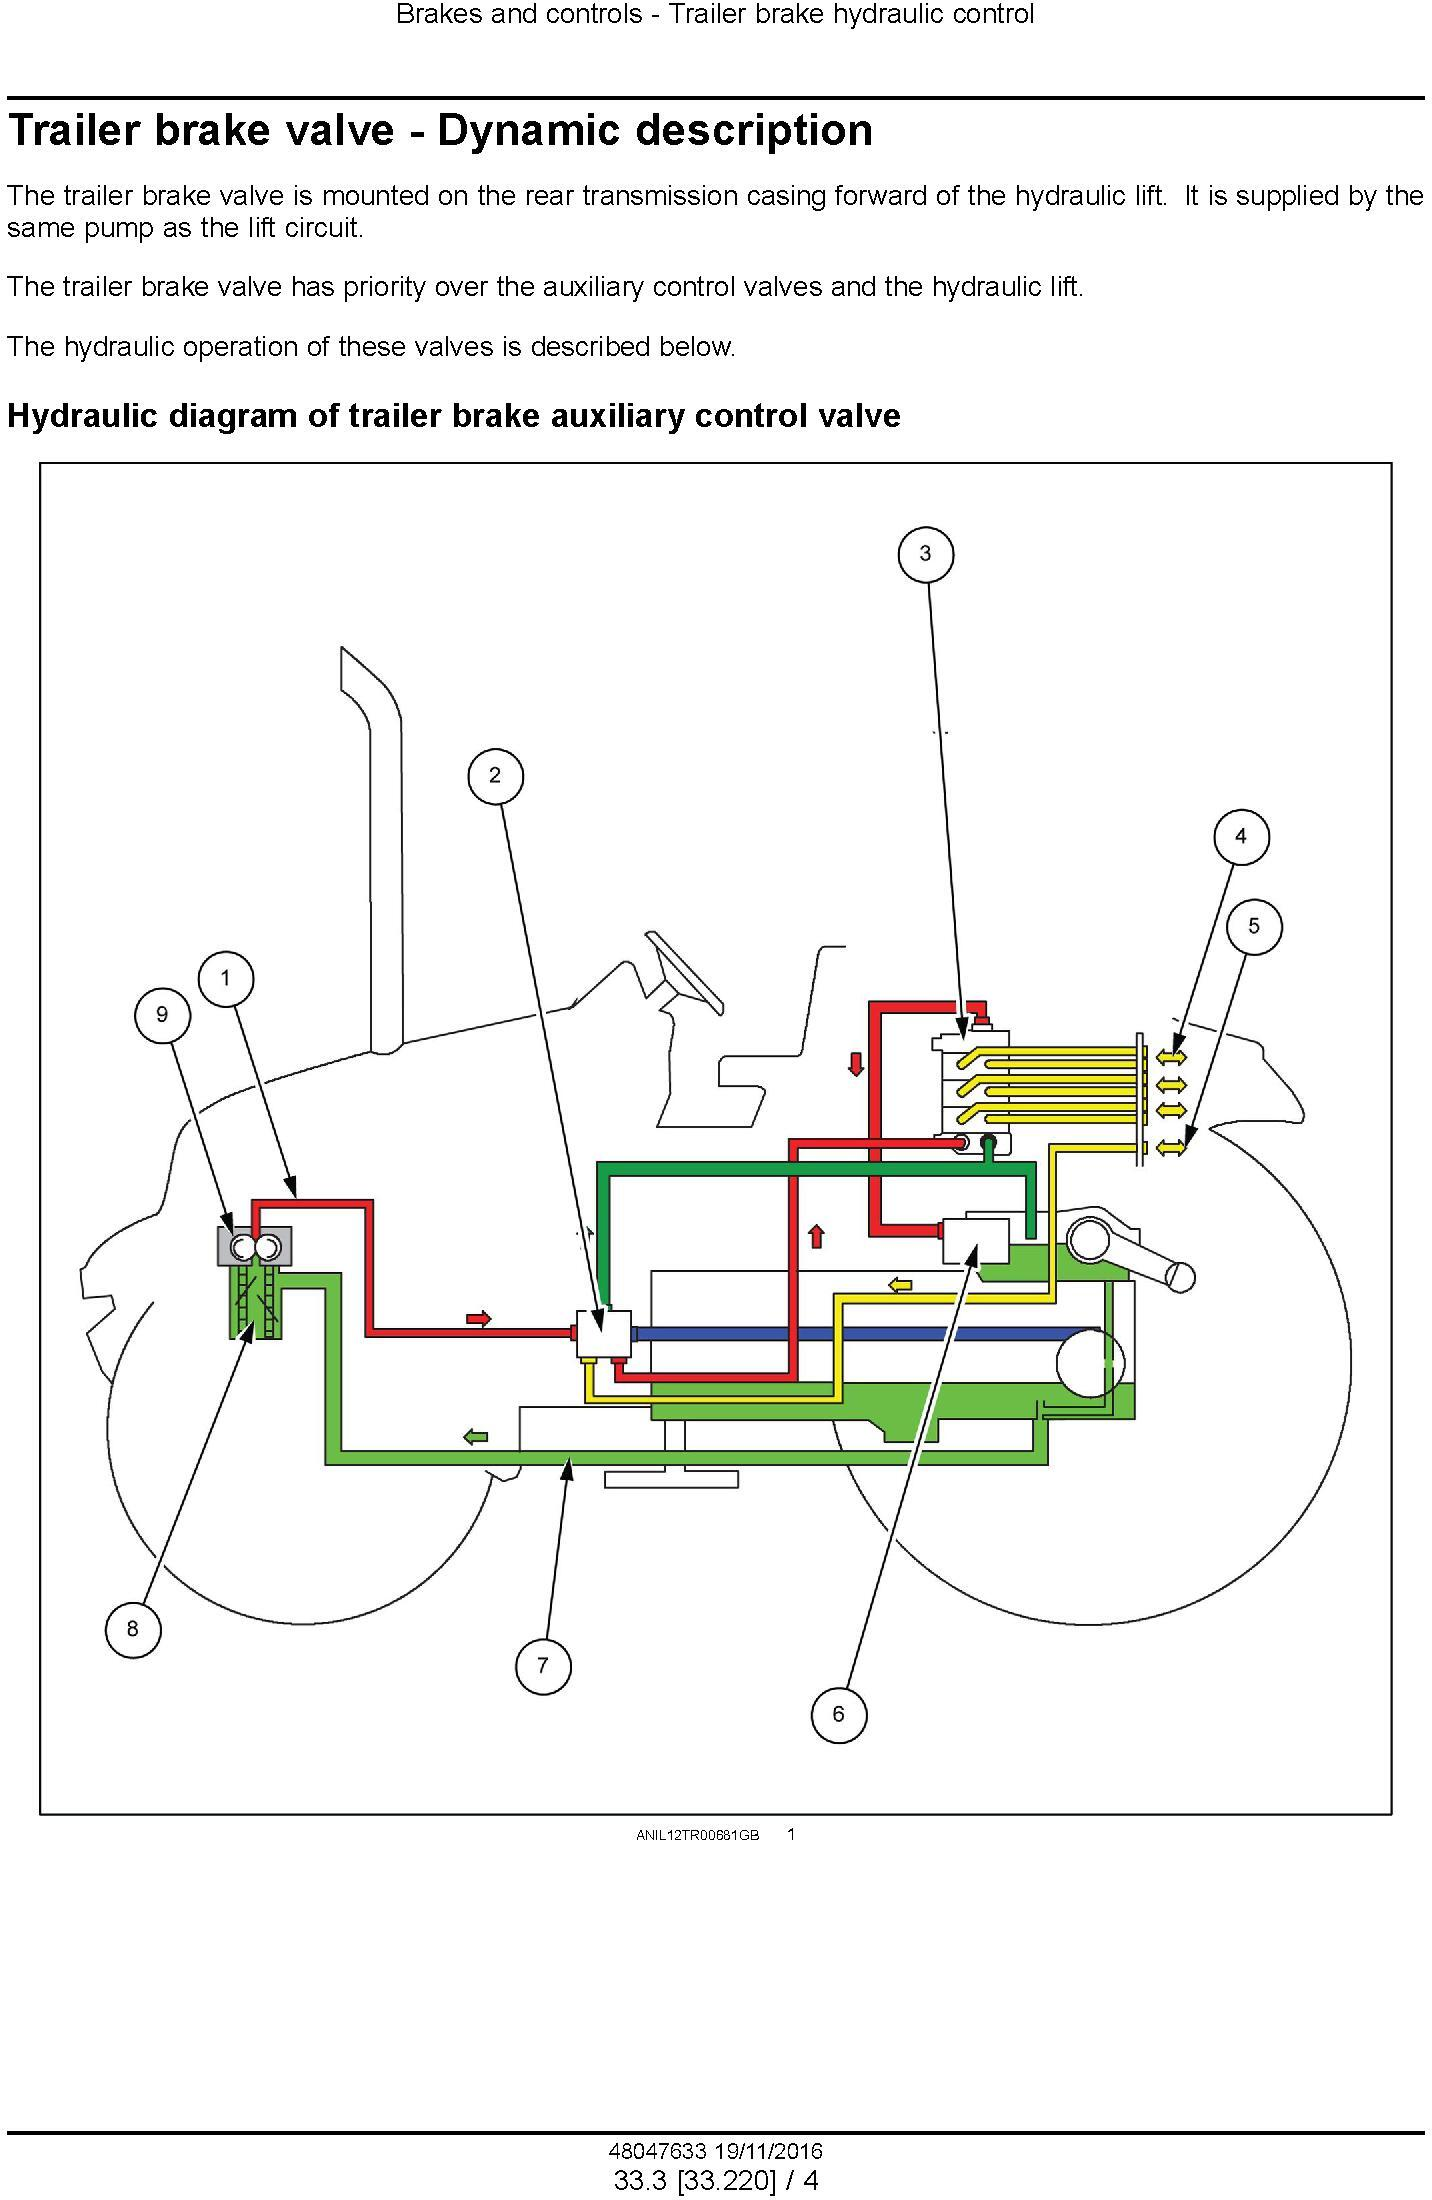 New Holland TD60, TD70, TD80, TD90, TD95 Straddle Tractor Service Manual (Asia, Africa) - 2